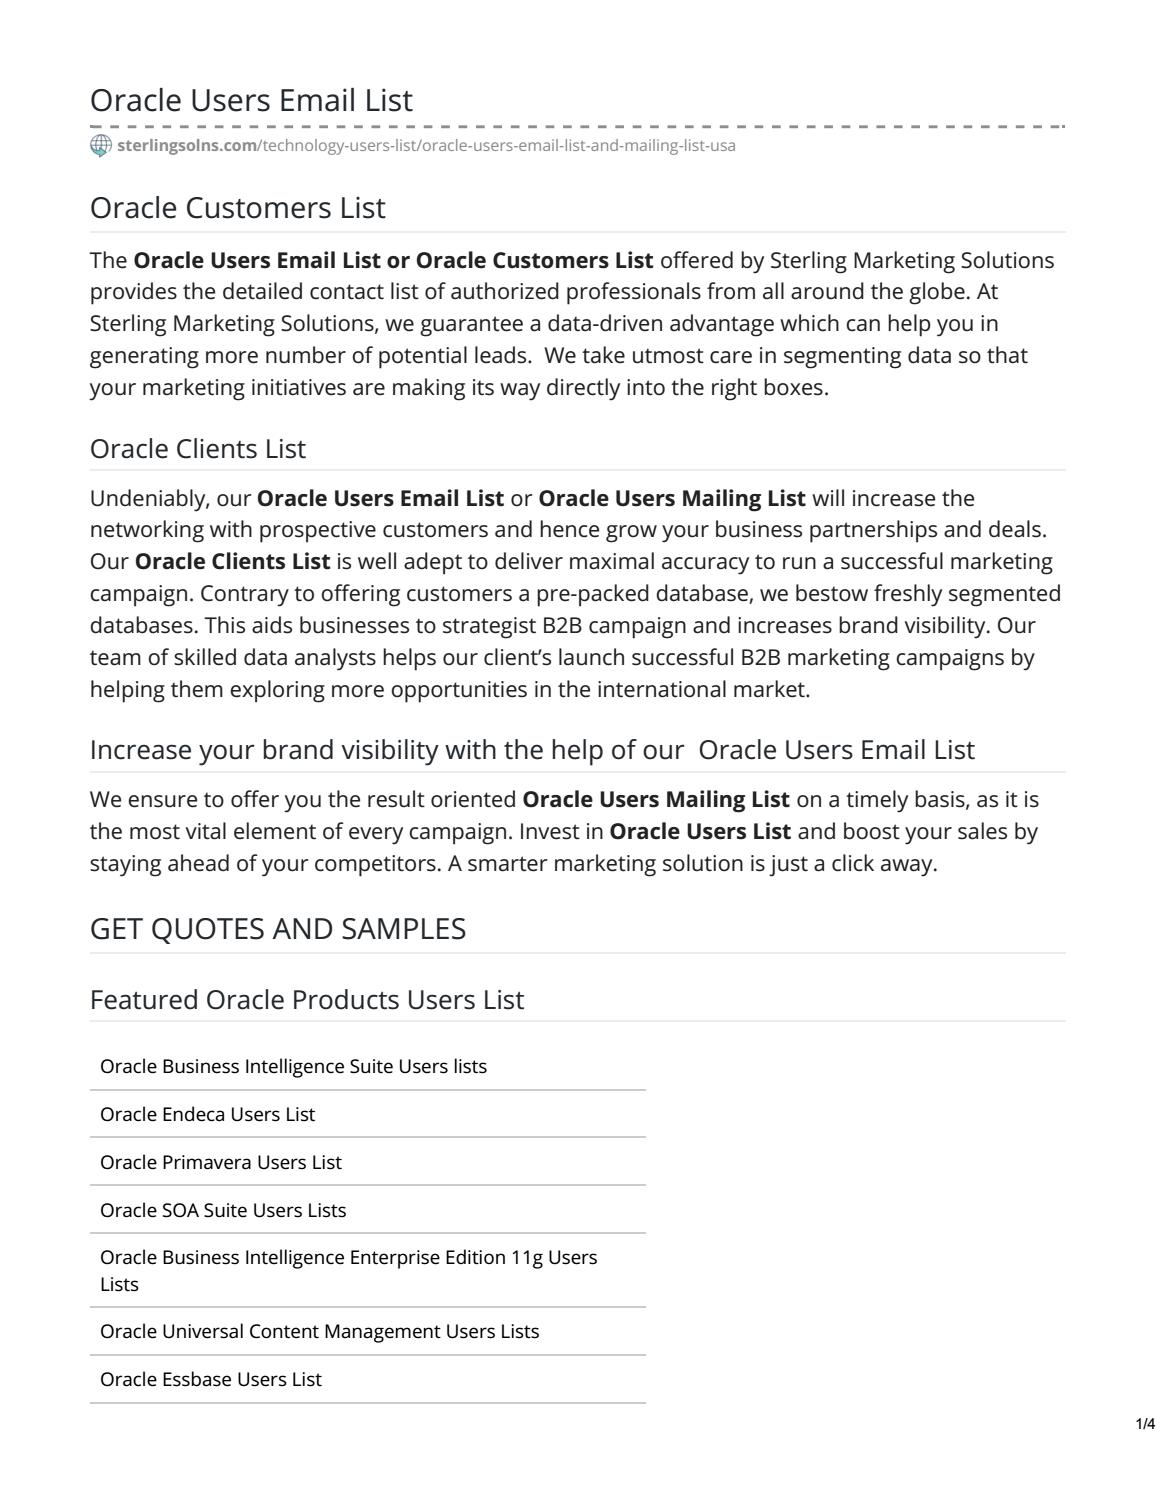 ORACLE USERS EMAIL LIST | Oracle Customers List by smdavid60 - issuu